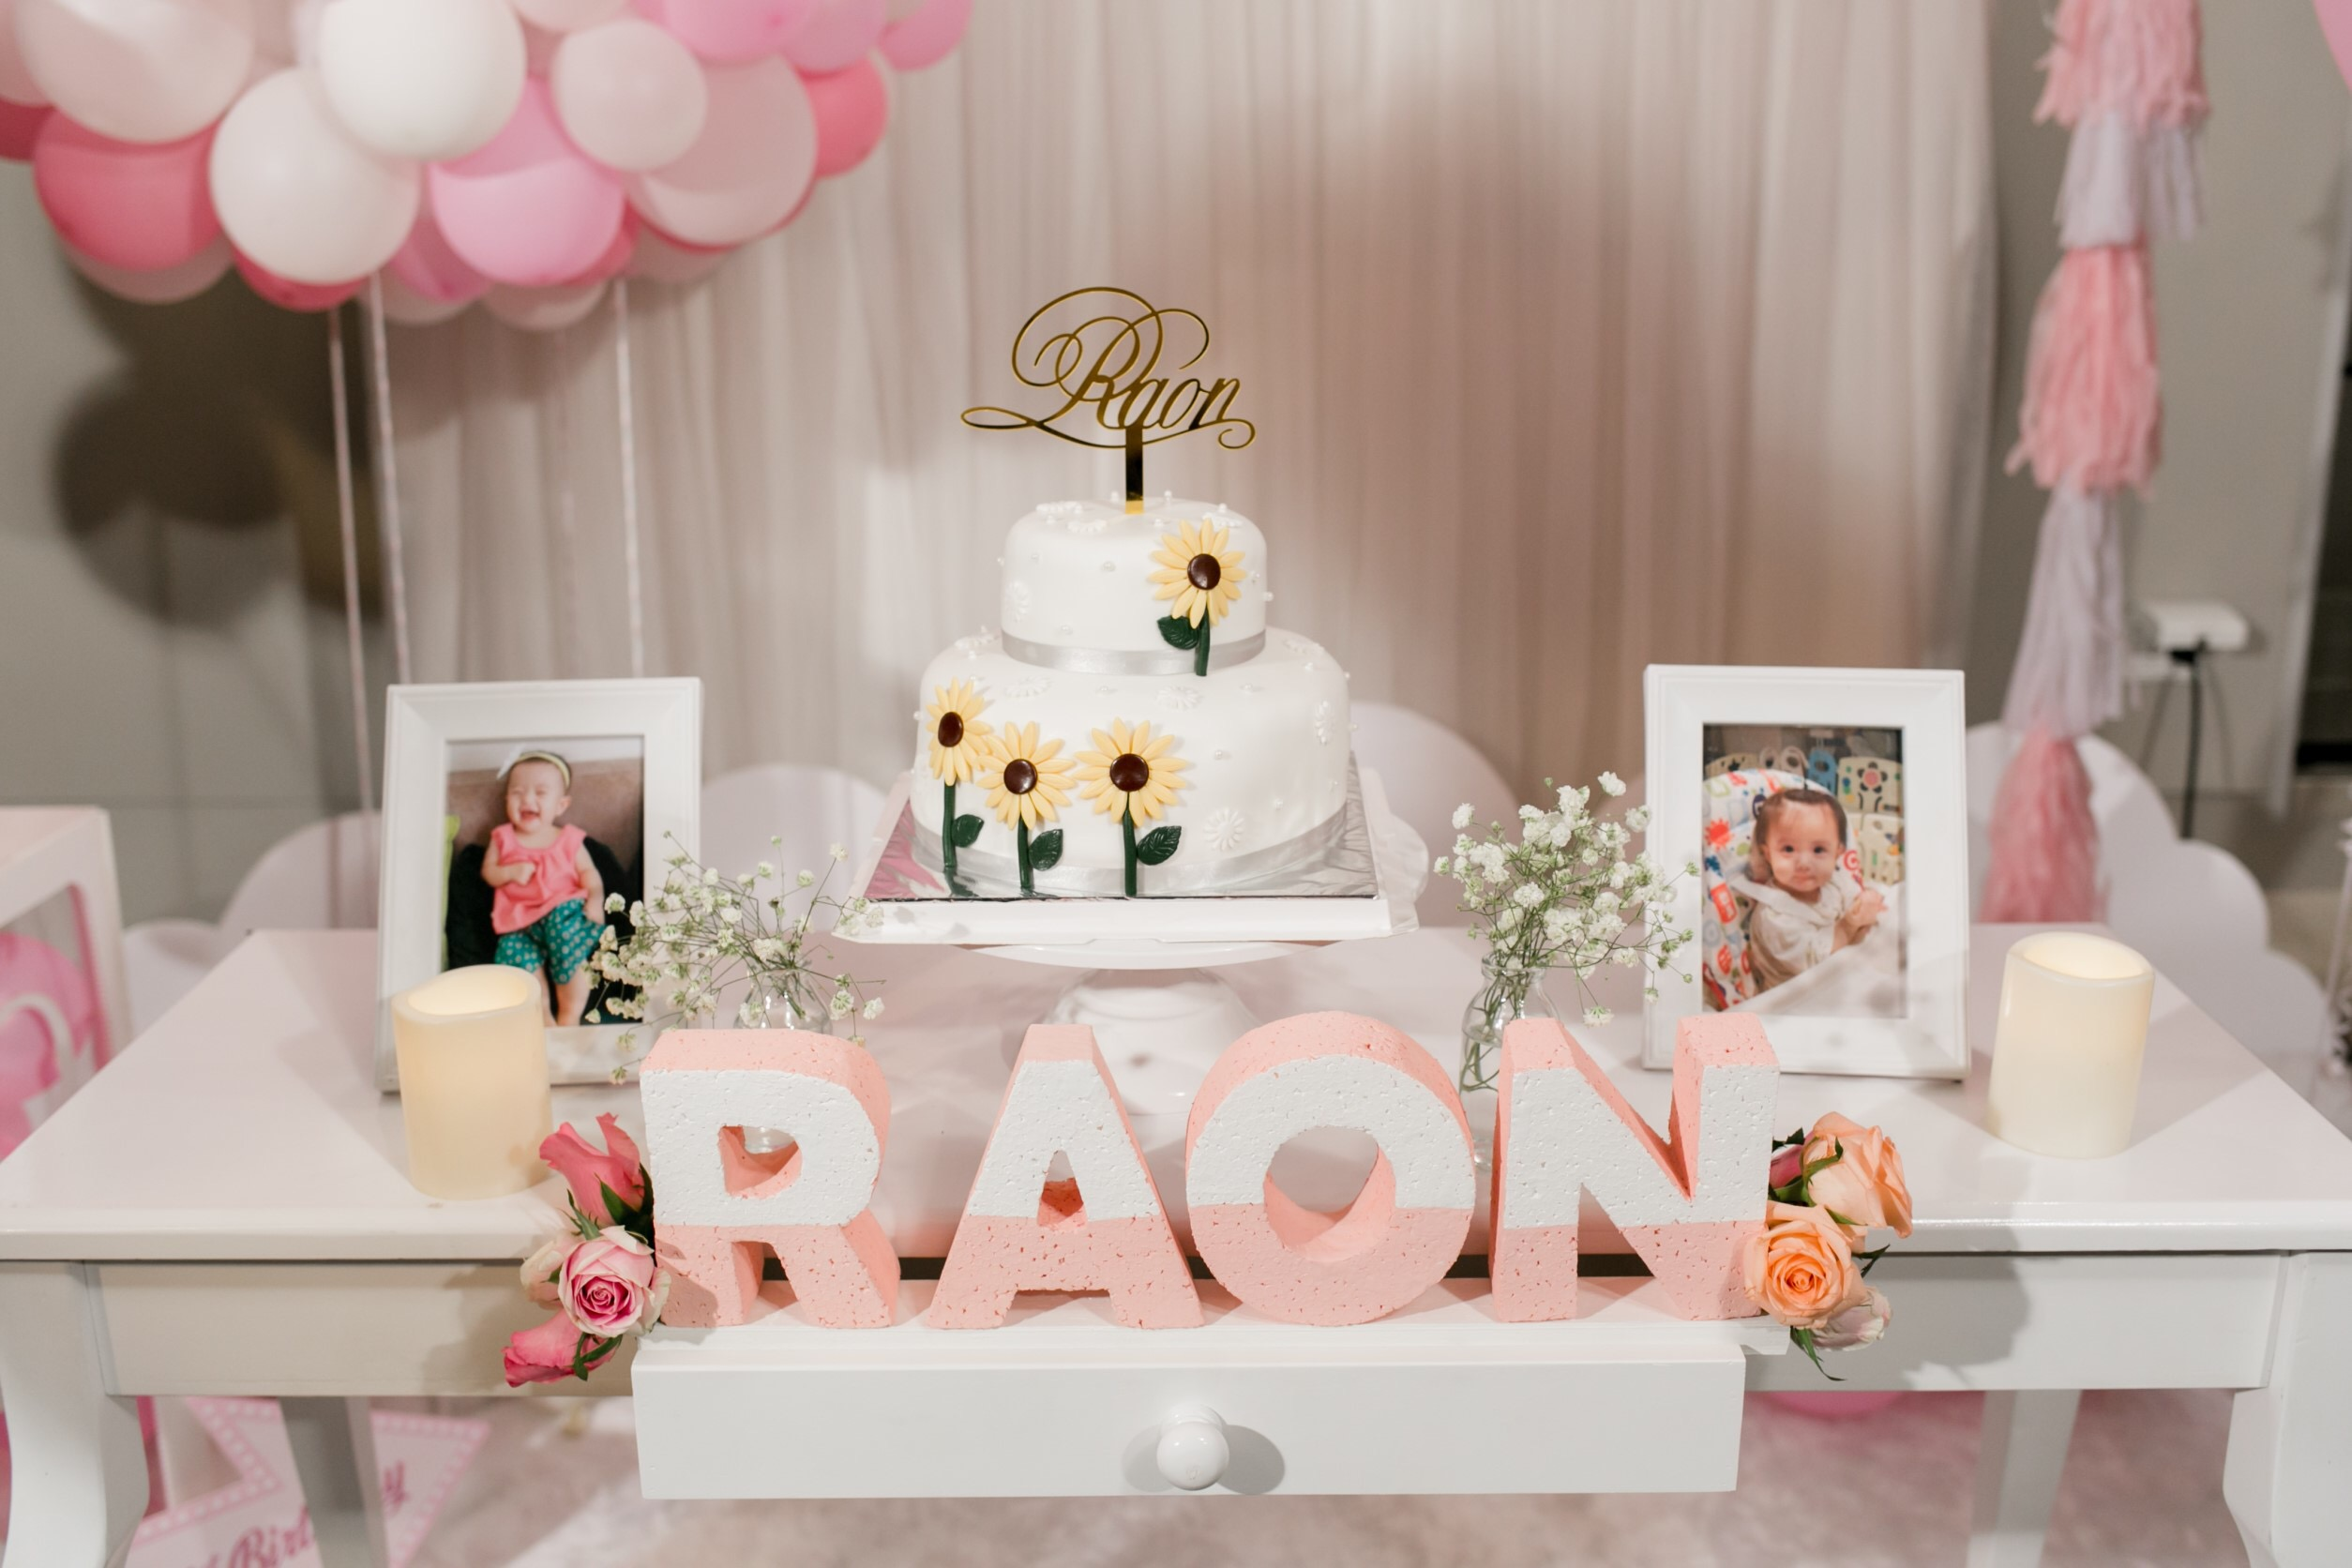 Cute pink birthday party decoration, backdrop, balloons, cake table, birthday cake and themed desserts